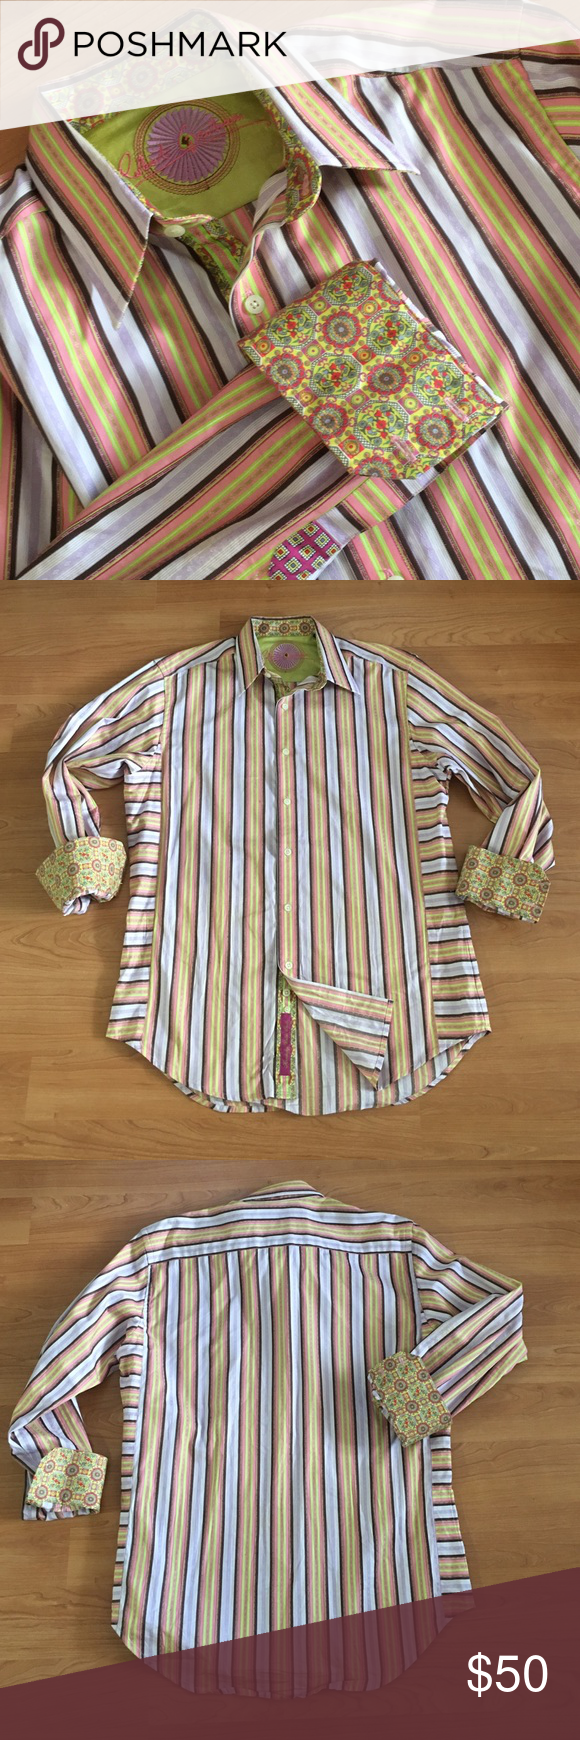 """Robert Graham flip cuff colorful stripe geometrics Great Robert Graham long sleeve shirt! Pink, green and lavender stripes. Geometric floral print on flip cuffs. Size medium. Armpit to armpit- 22.5"""" shoulder to shoulder- 19"""" neck to bottom front tail- 30.5"""". Small blemish near third button and tiny pin size hole near left shoulder. Thanks! Robert Graham Shirts Dress Shirts"""